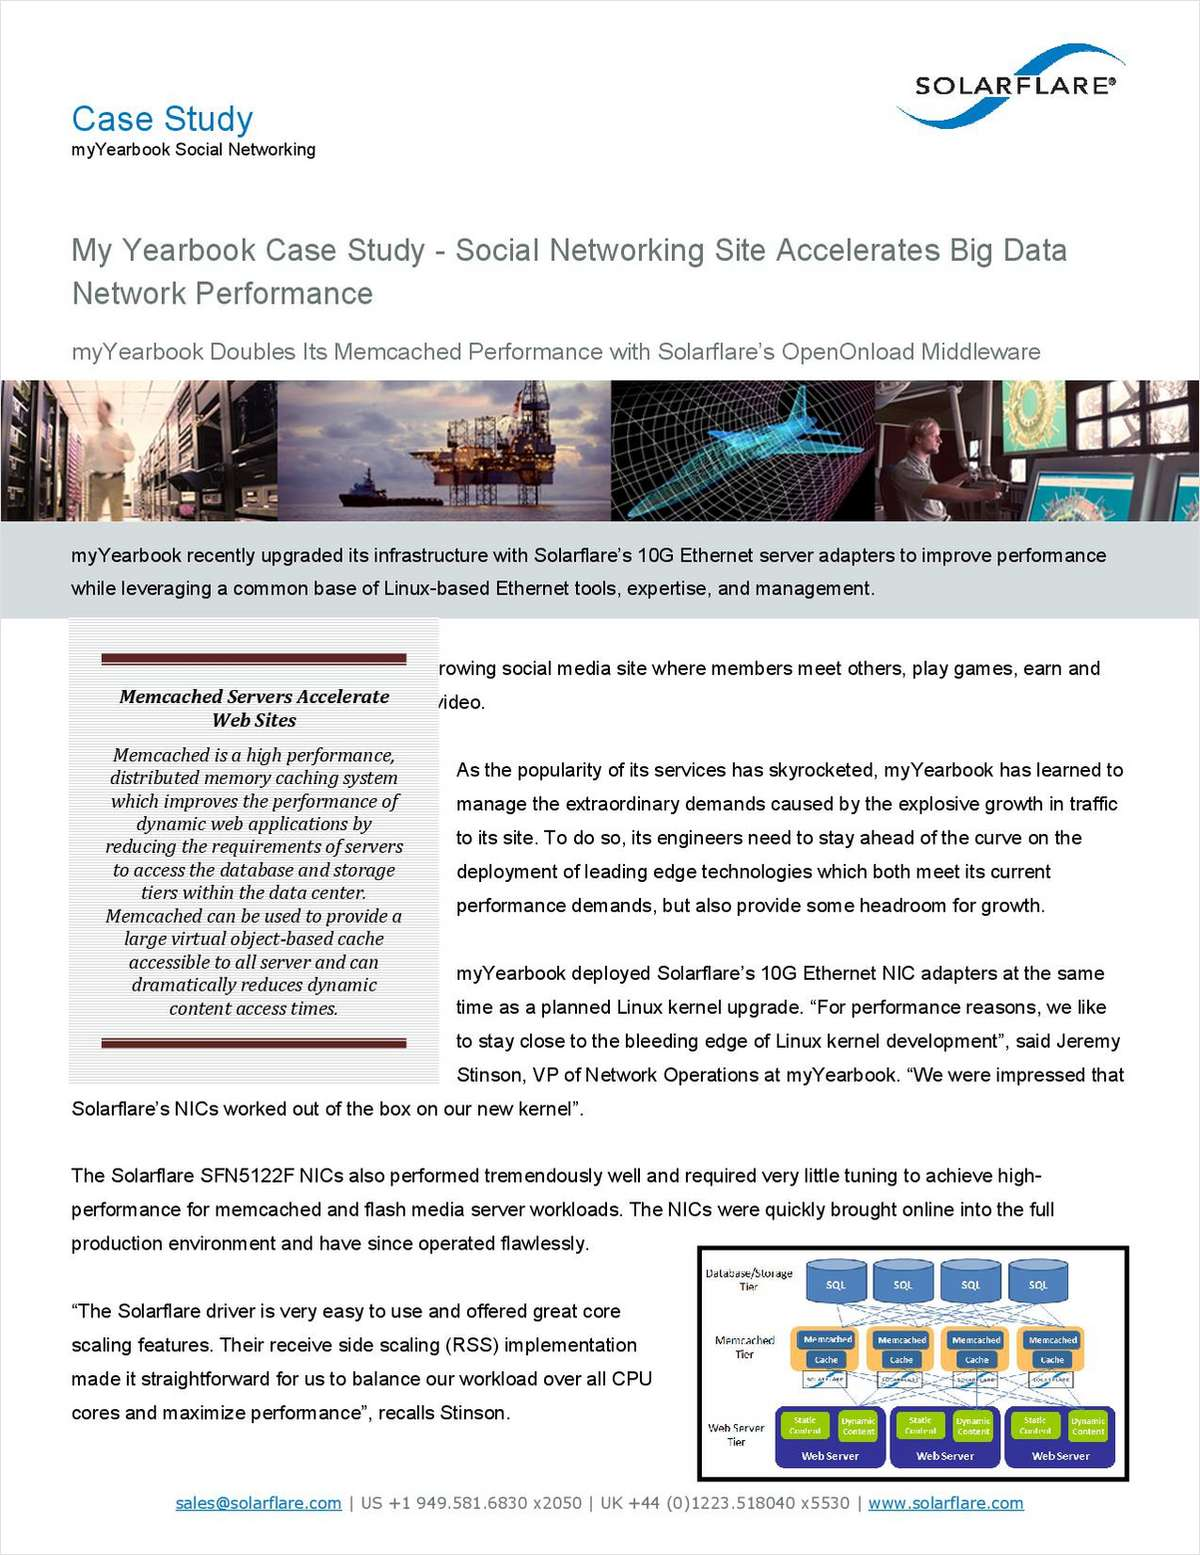 myYearbook Case Study - Social Networking Site Accelerates  Network Performance